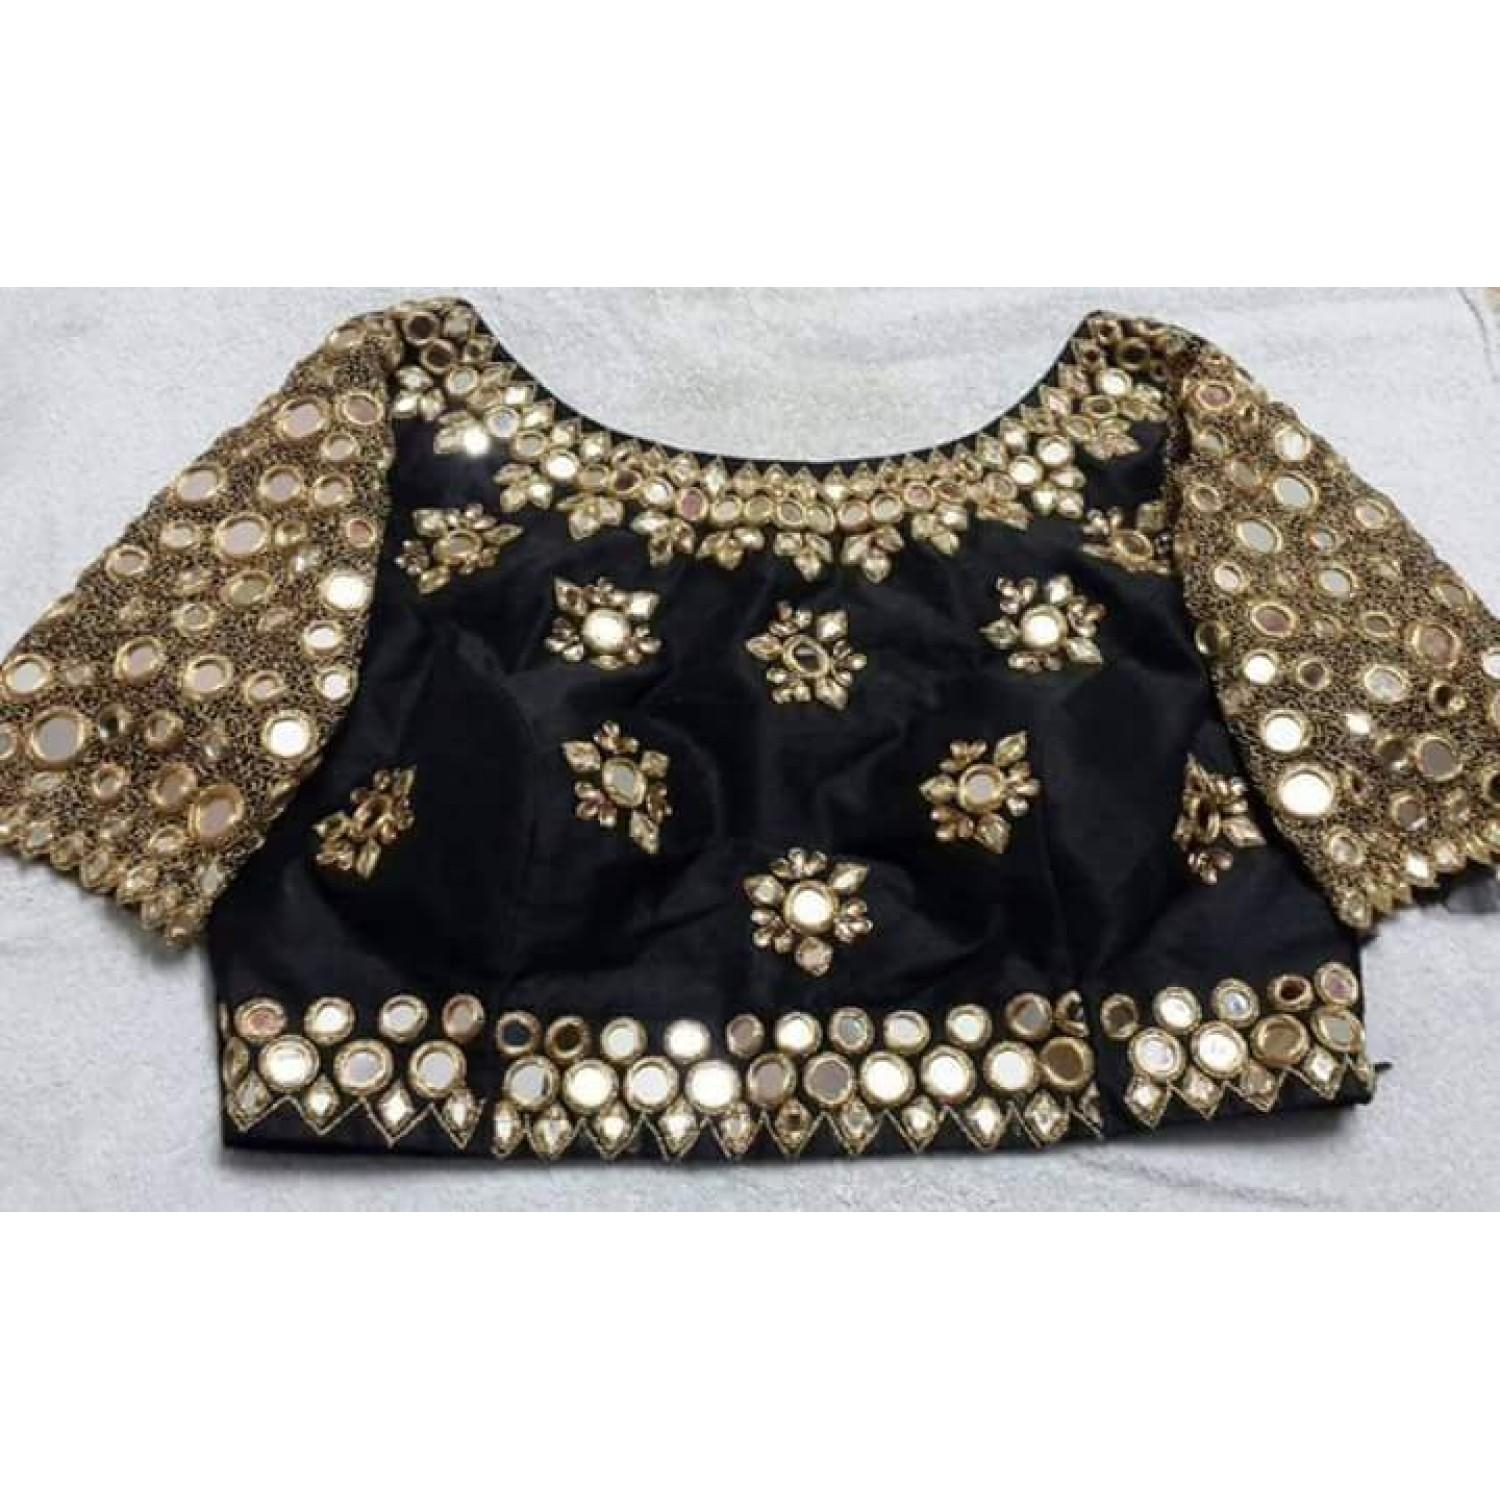 Latest Bridal Readymade Blouses Online Shopping India With Low Pertaining To Online Shopping Mirror (Image 11 of 20)